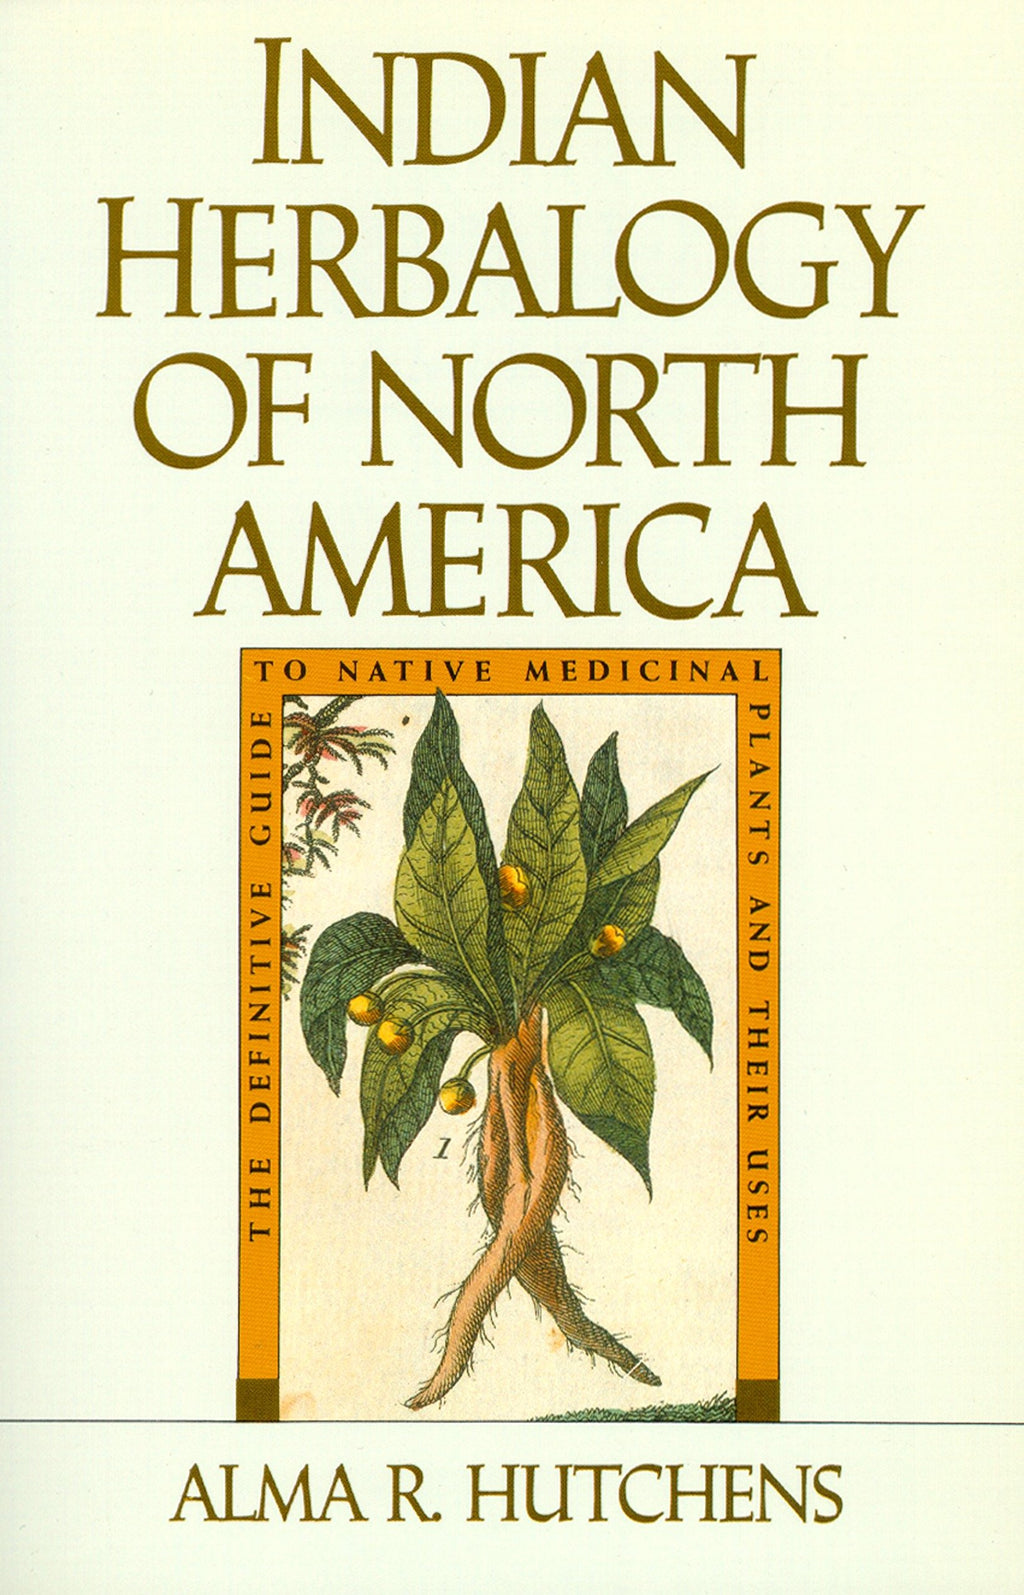 Indian Herbalogy of North America by Alma Hutchens